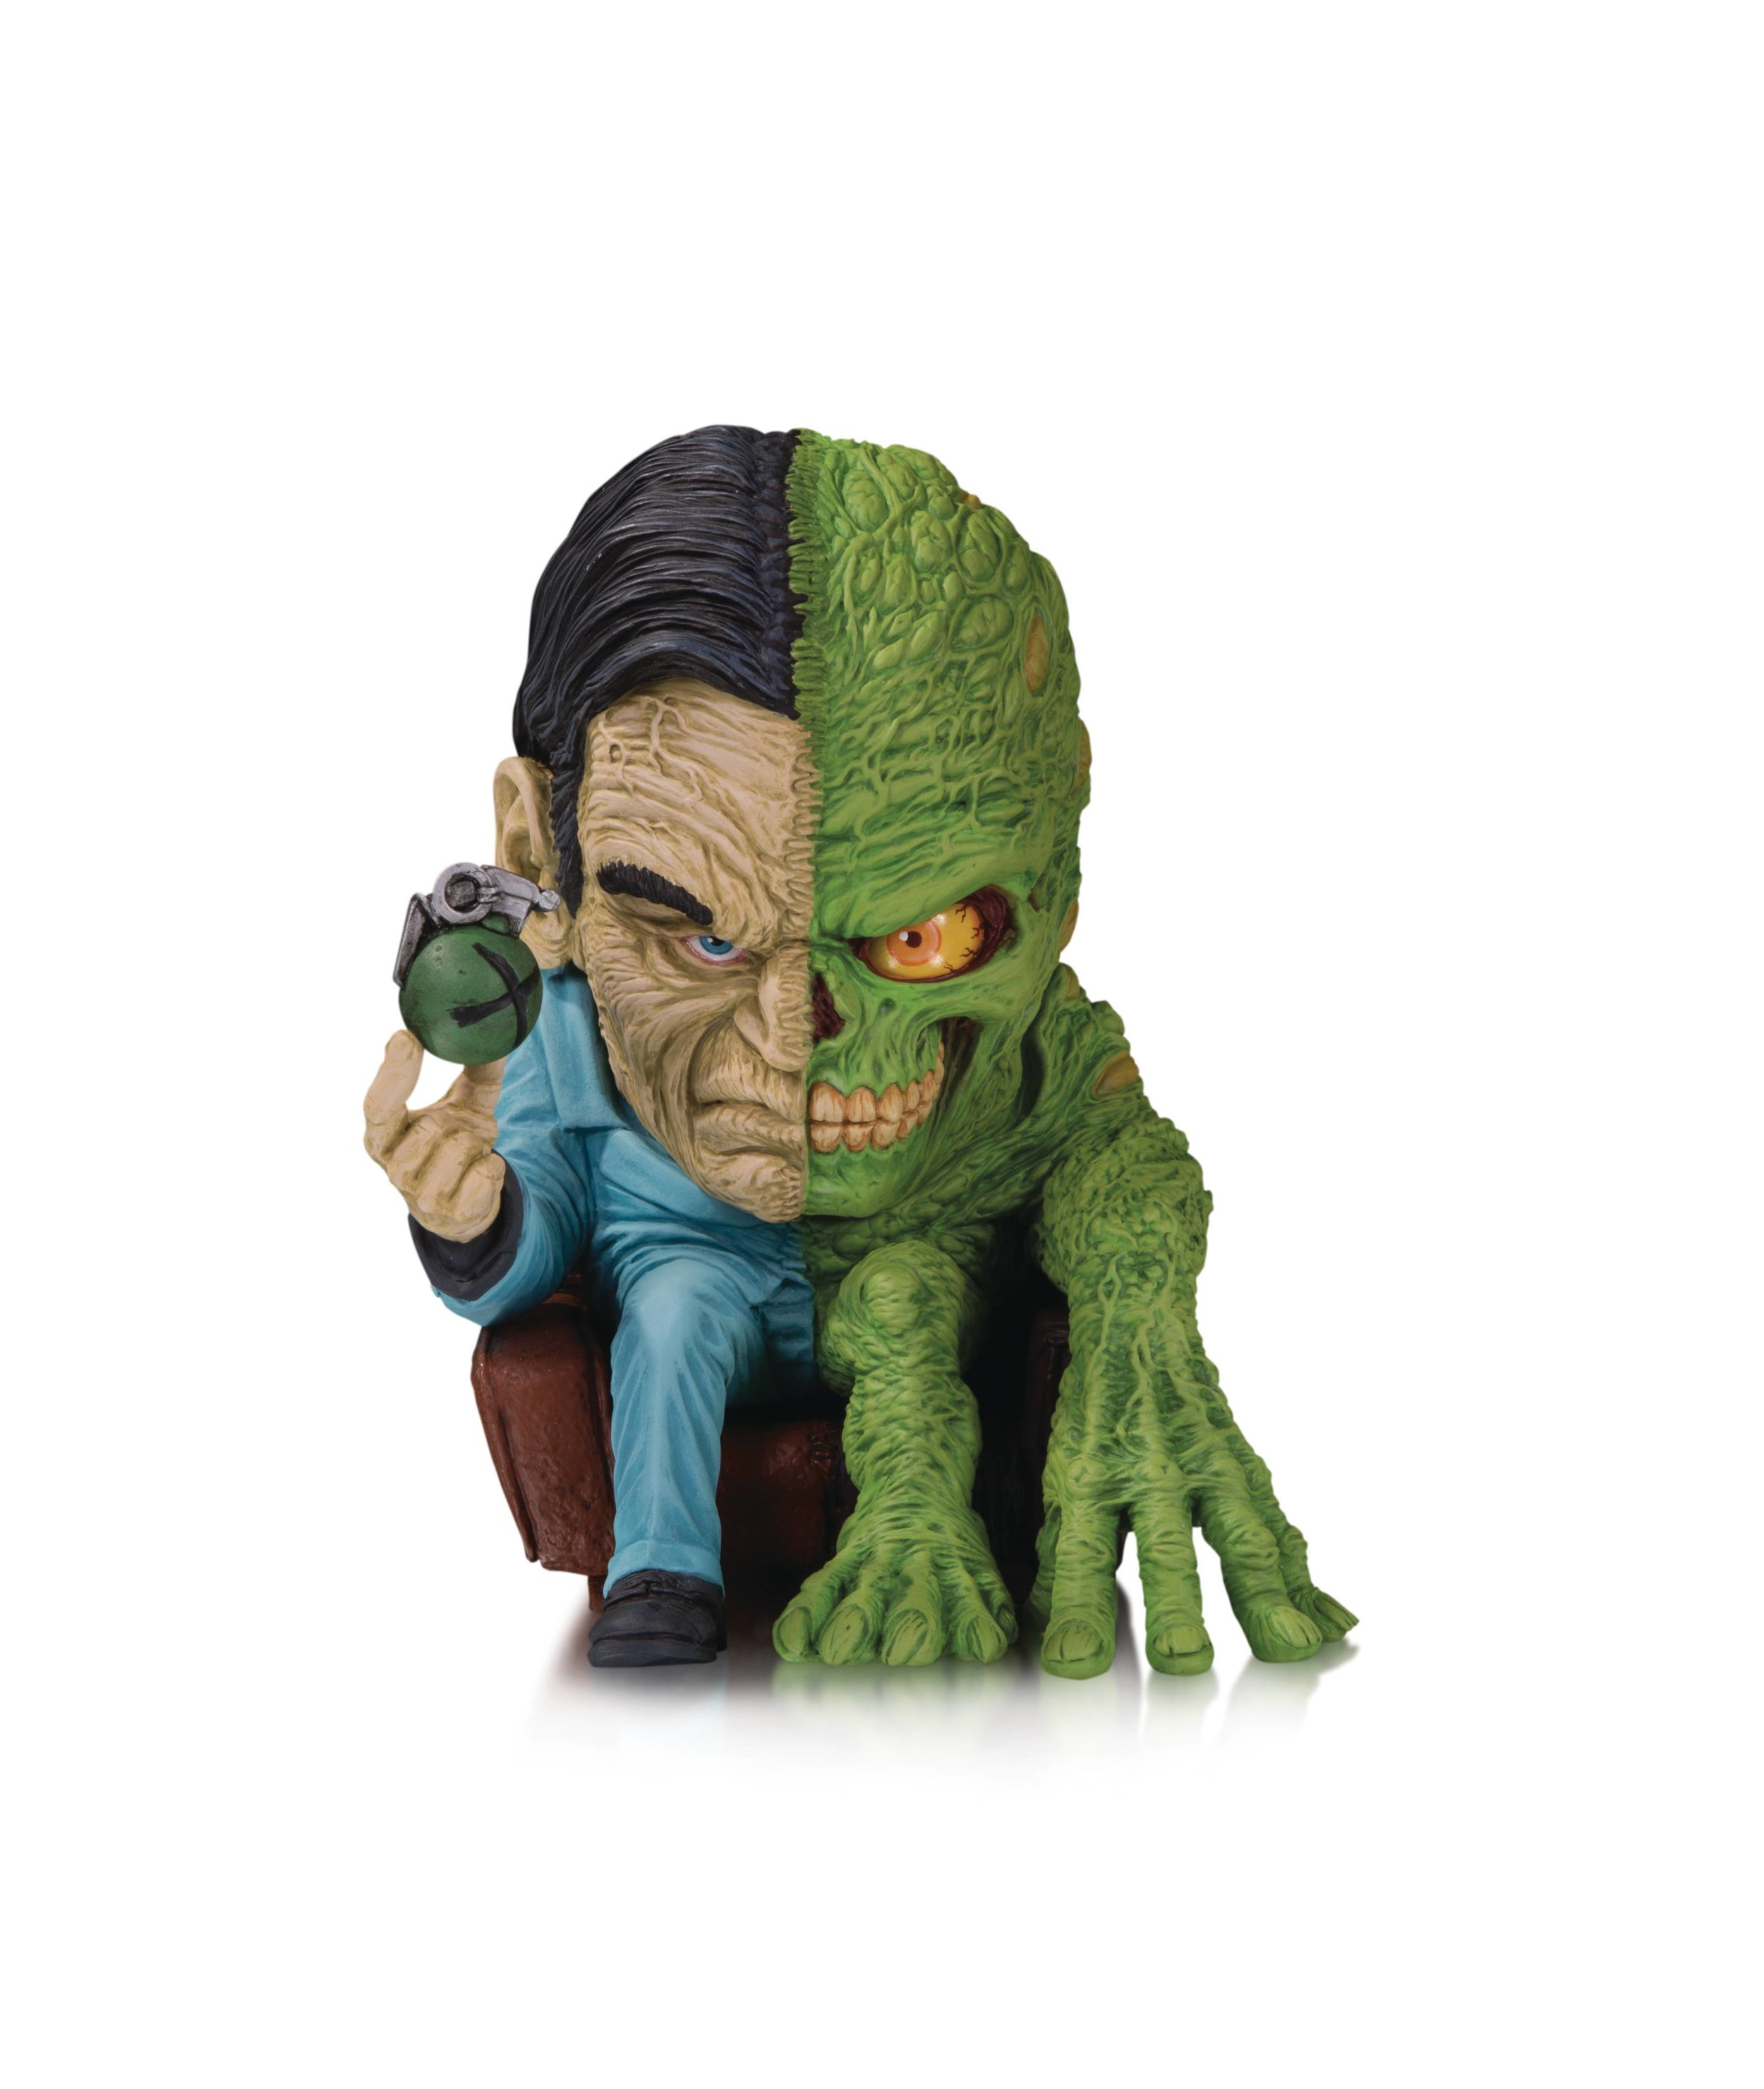 DC ARTISTS ALLEY TWO FACE BY GROMAN VINYL FIG.jpg